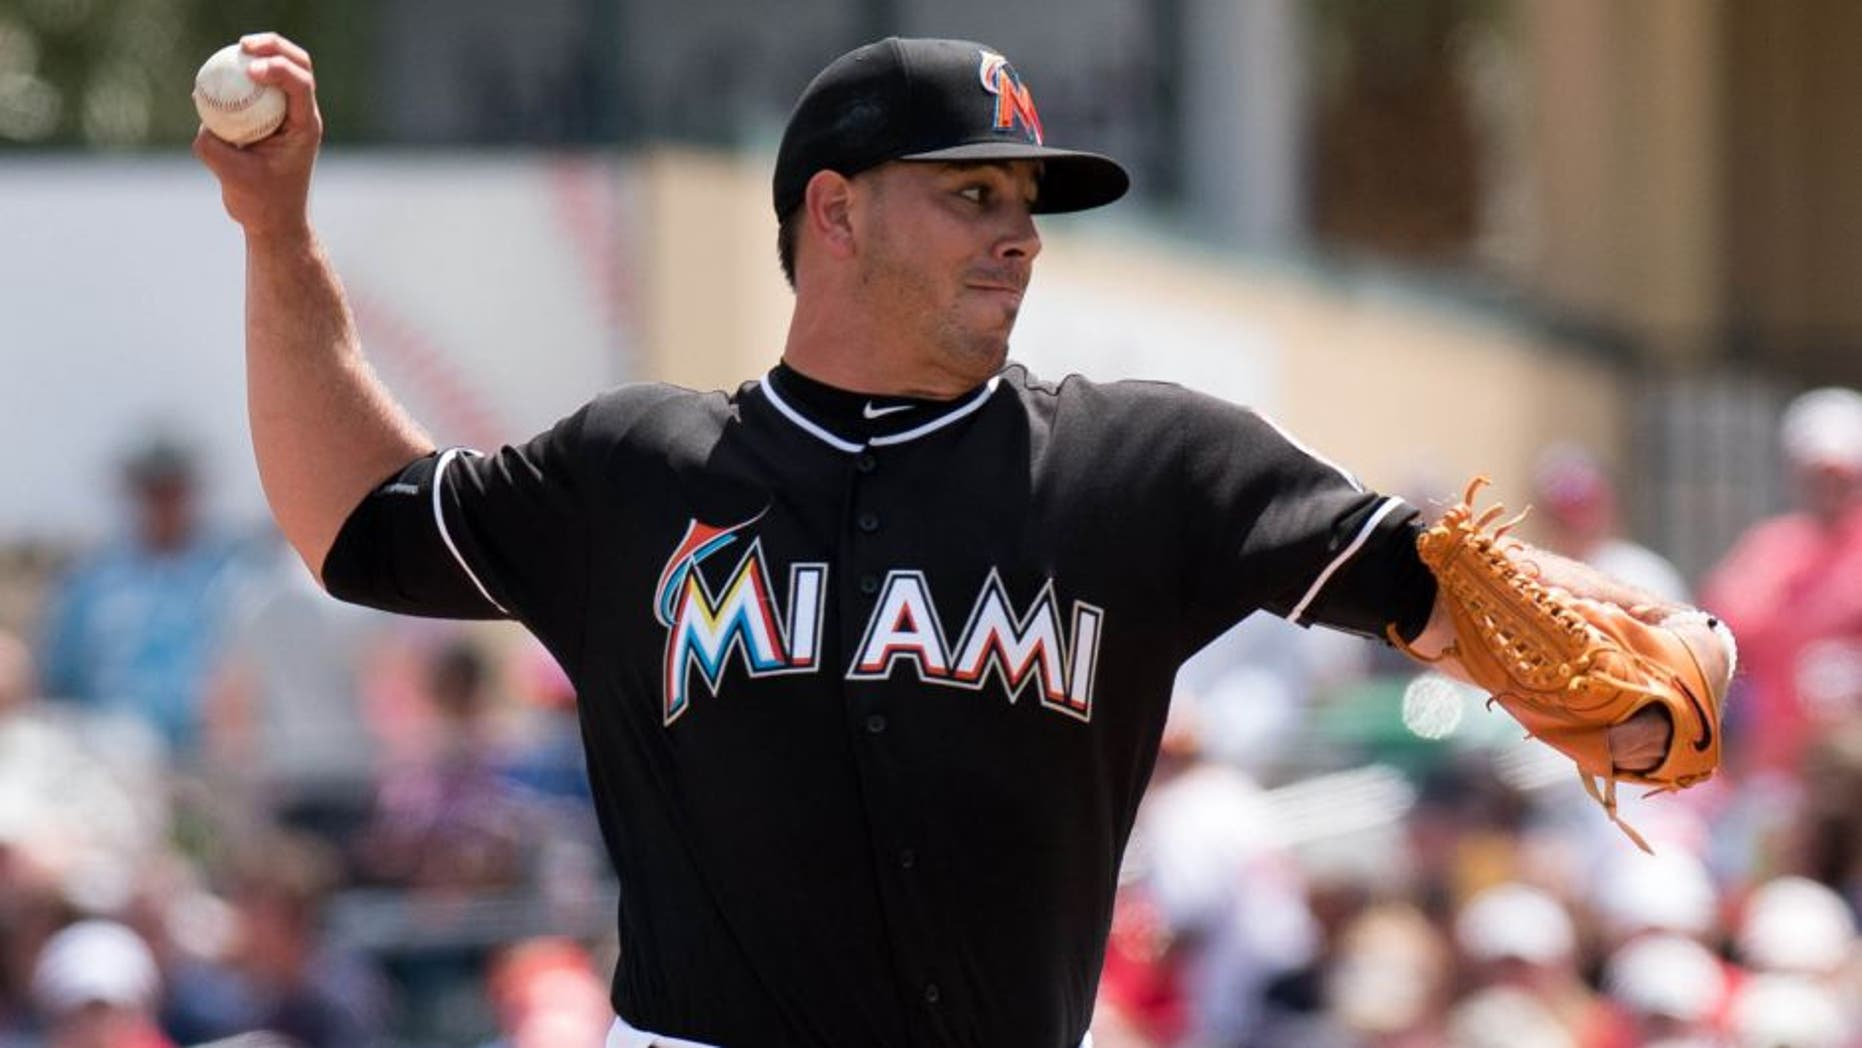 Mar 22, 2016; Jupiter, FL, USA; Miami Marlins starting pitcher Jose Fernandez (16) delivers a pitch during a spring training game against the Boston Red Sox at Roger Dean Stadium. Mandatory Credit: Steve Mitchell-USA TODAY Sports